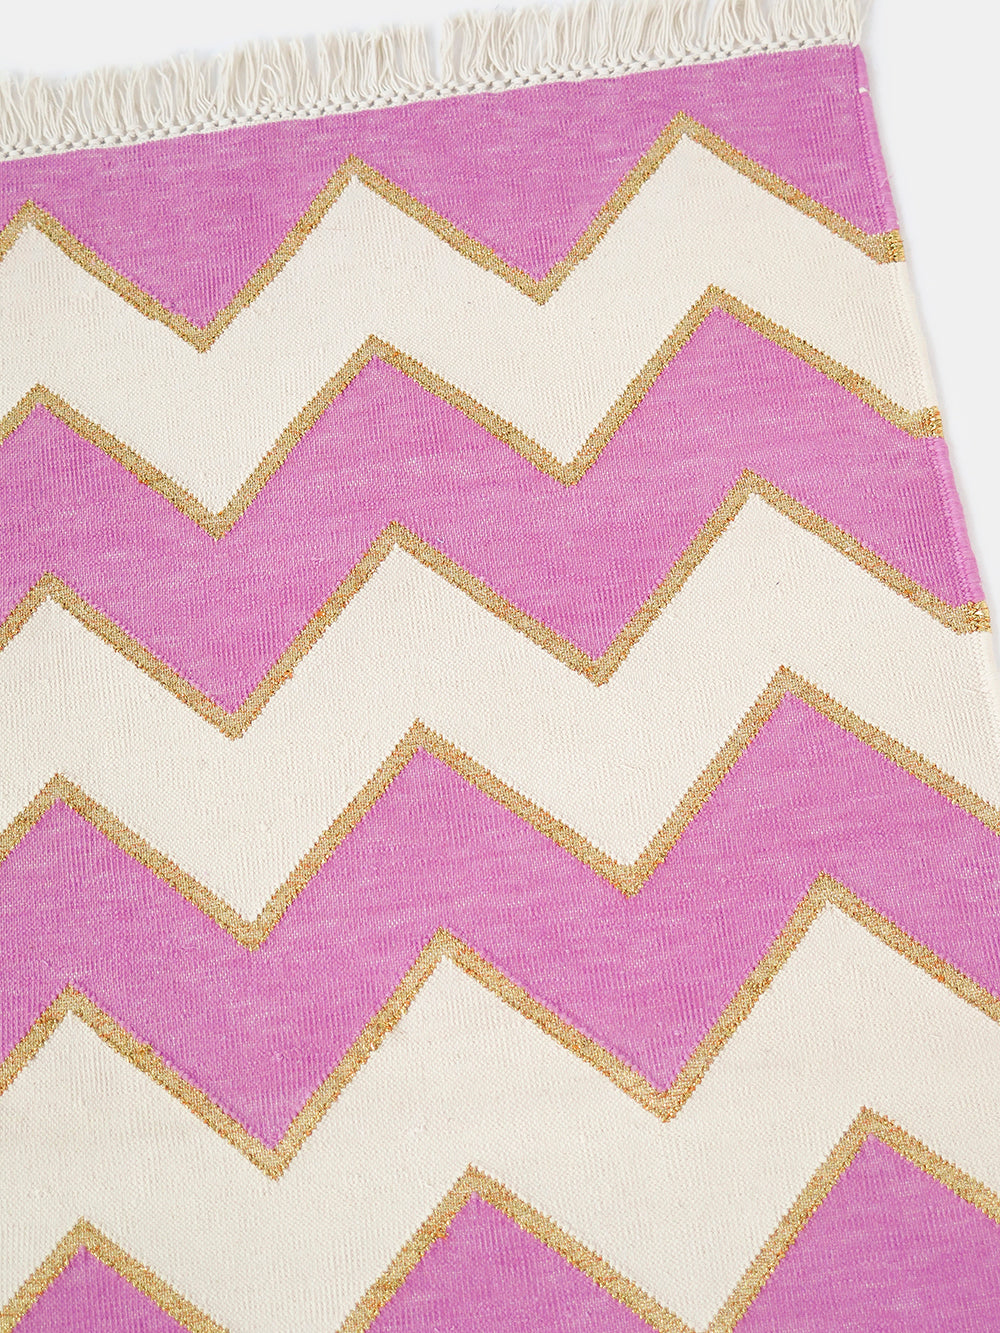 panja wave rug in fuchsia + gold